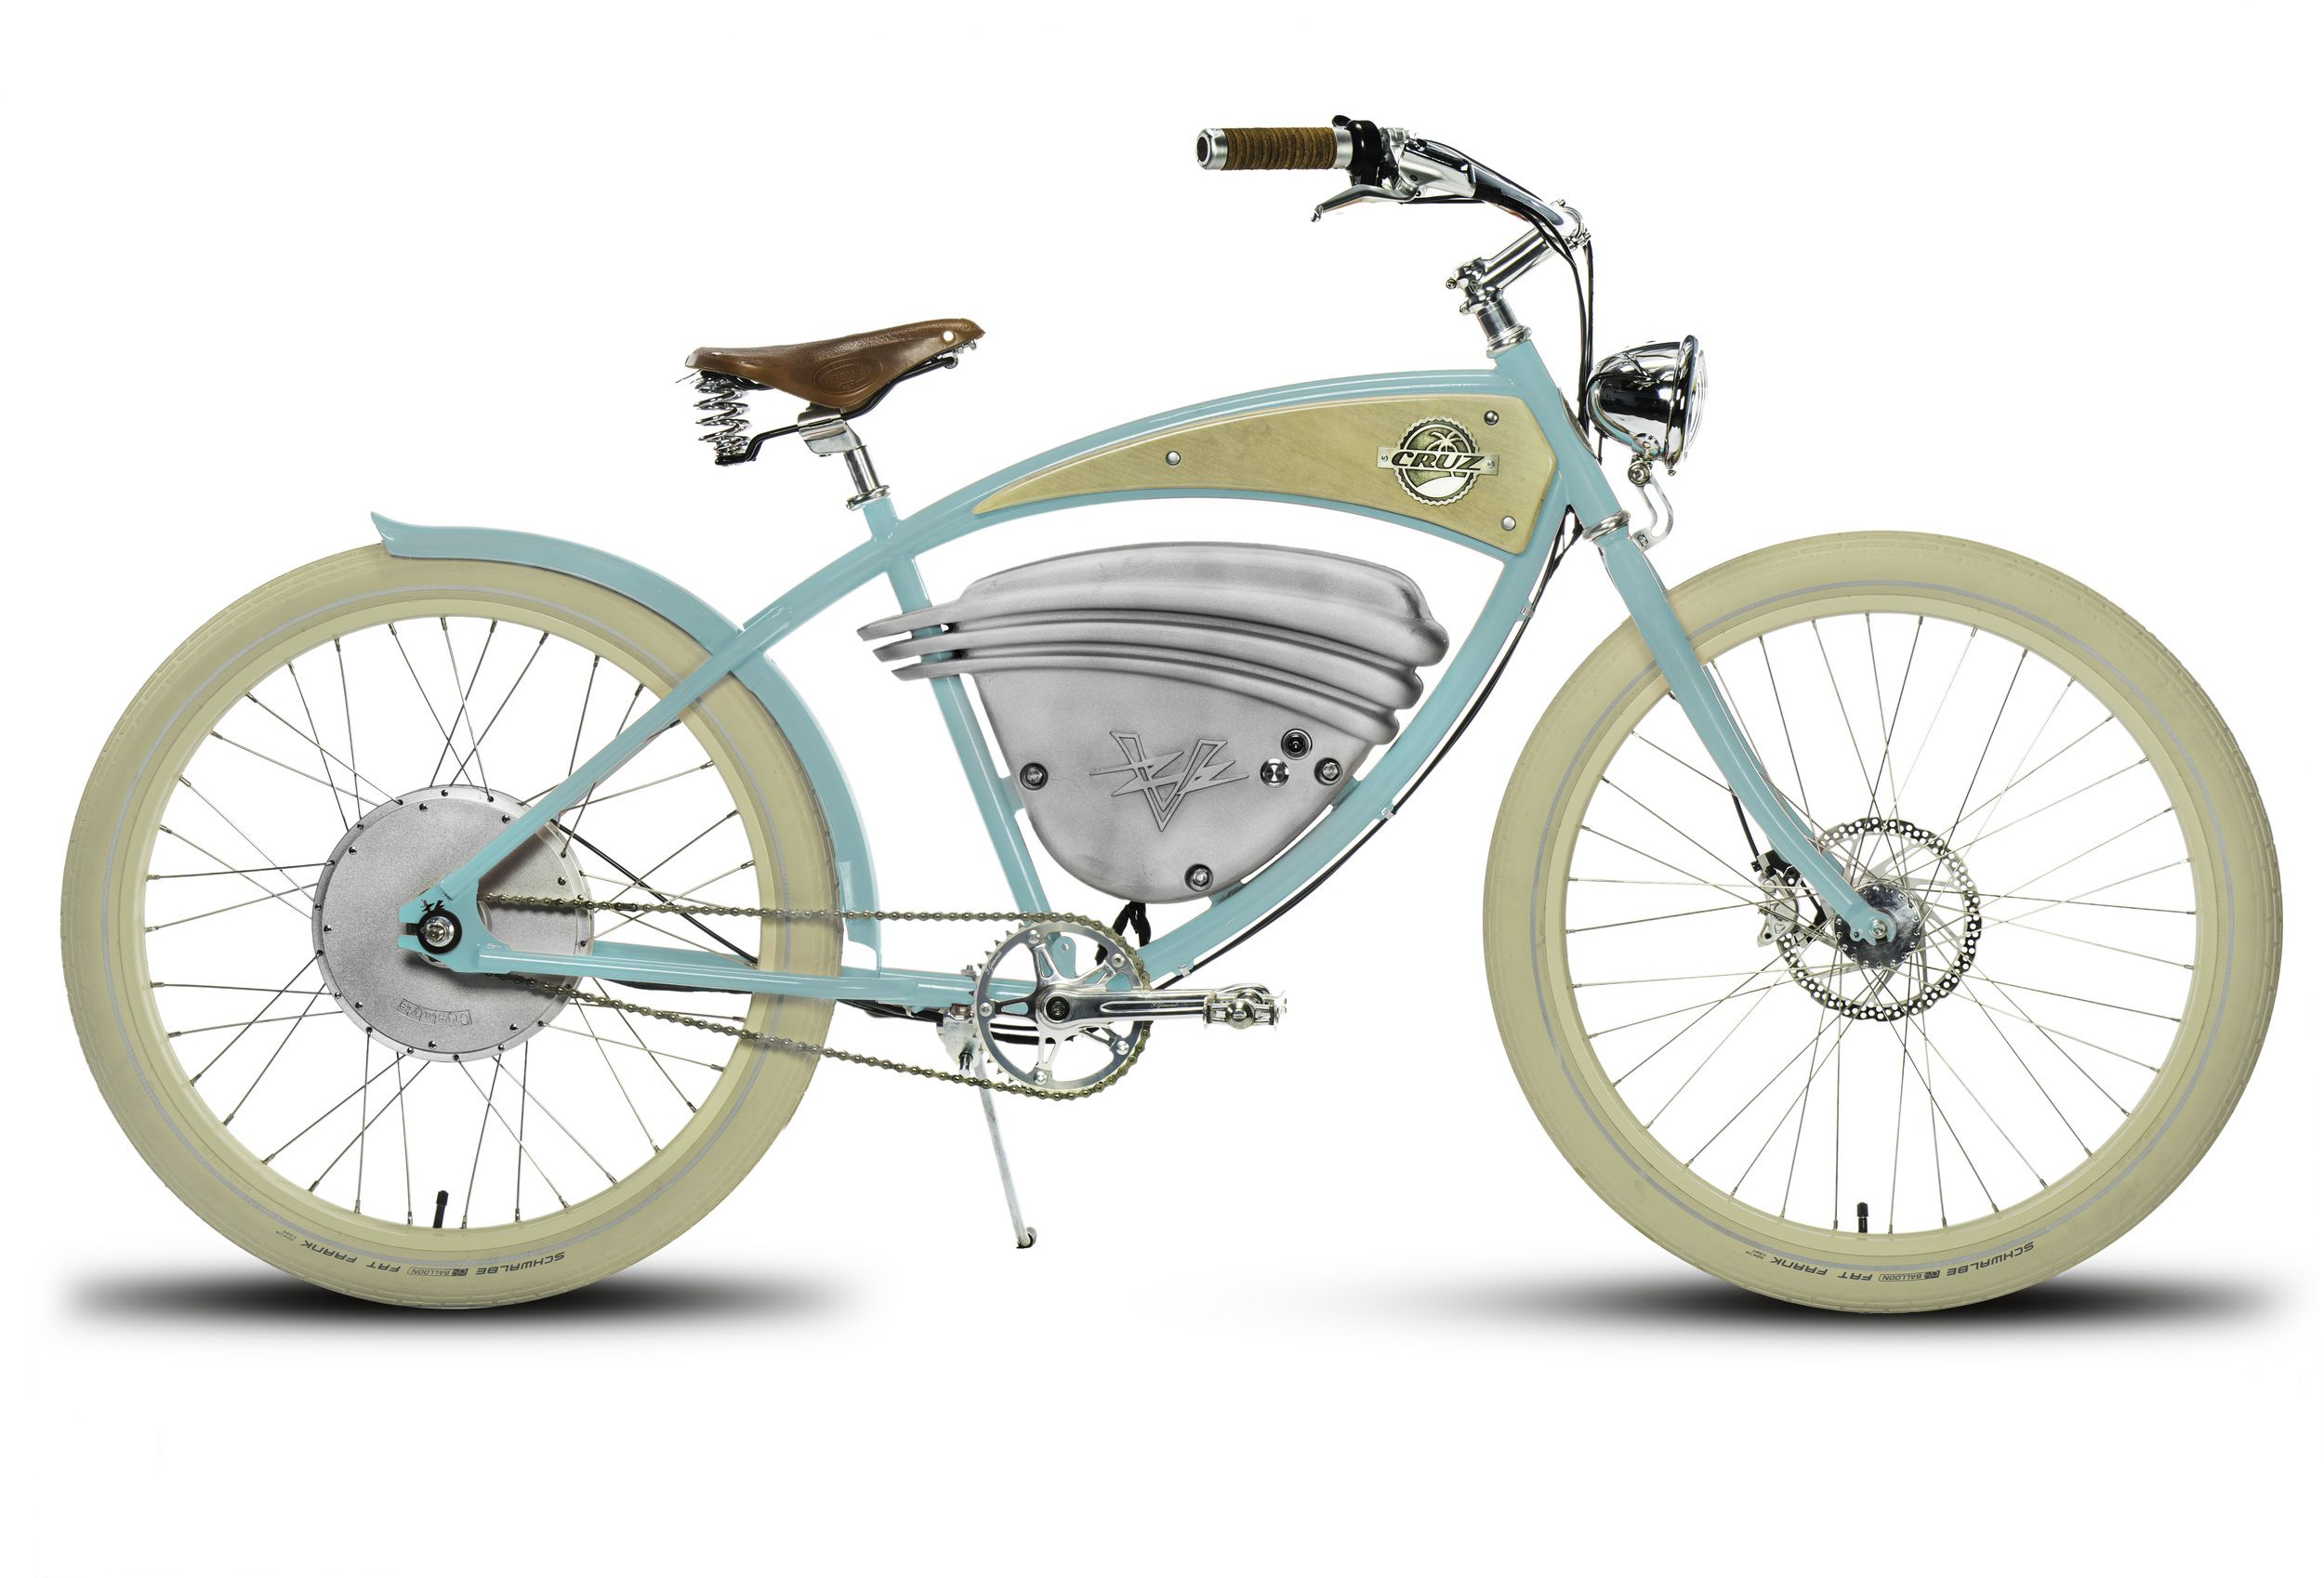 Vintage Electric Cruz Ebike In Aqua Top Speed Of 36 Mph With A